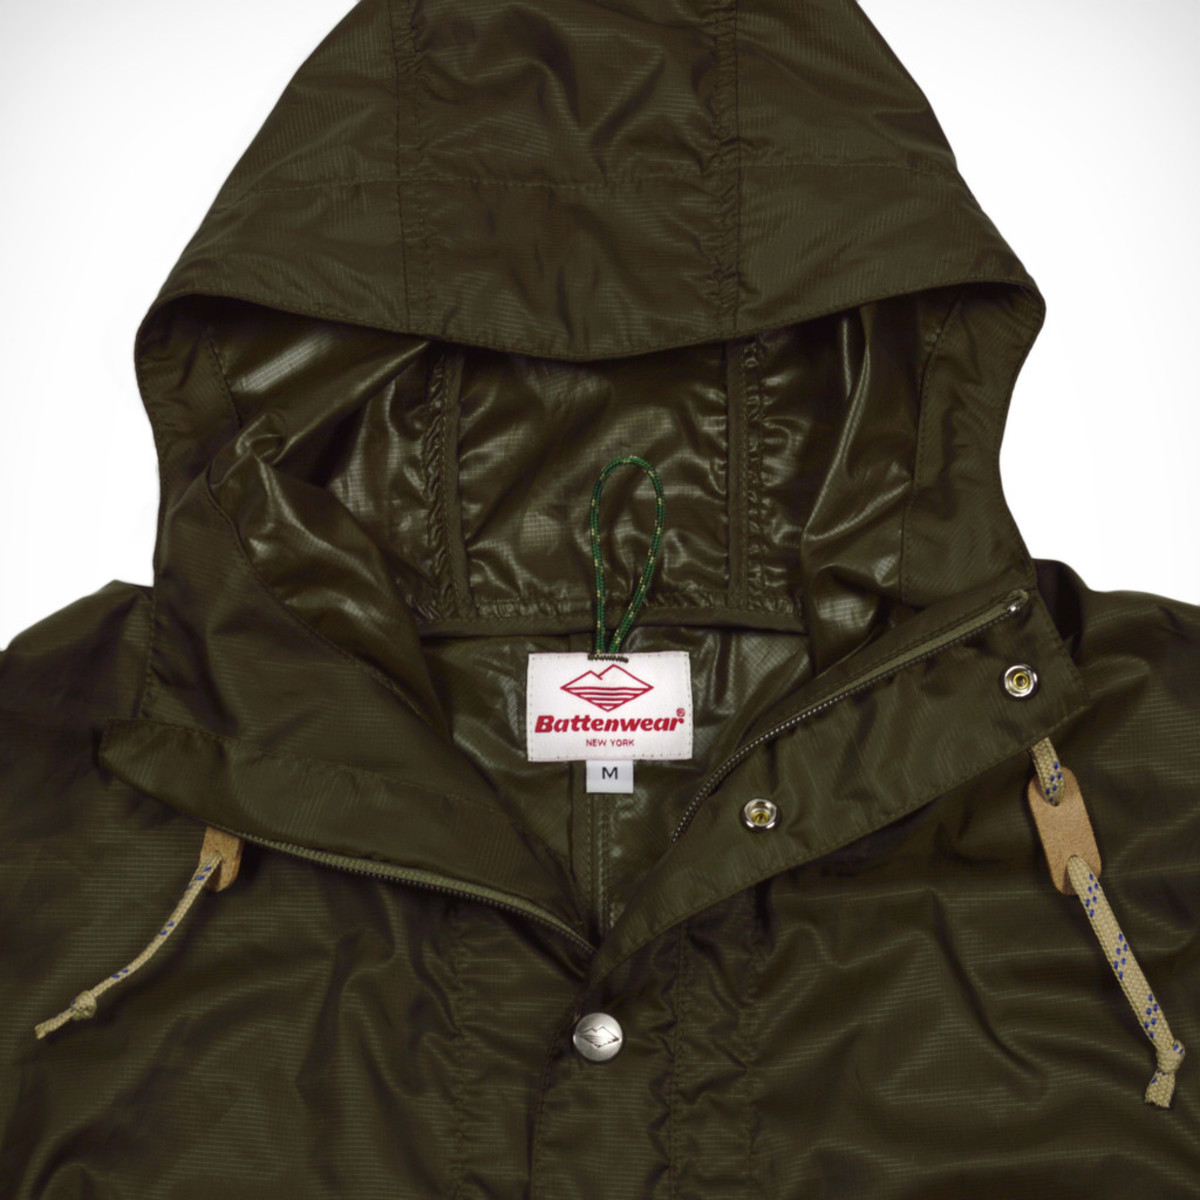 battenwear-packable-anorak-for-ace-hotel-04.jpeg